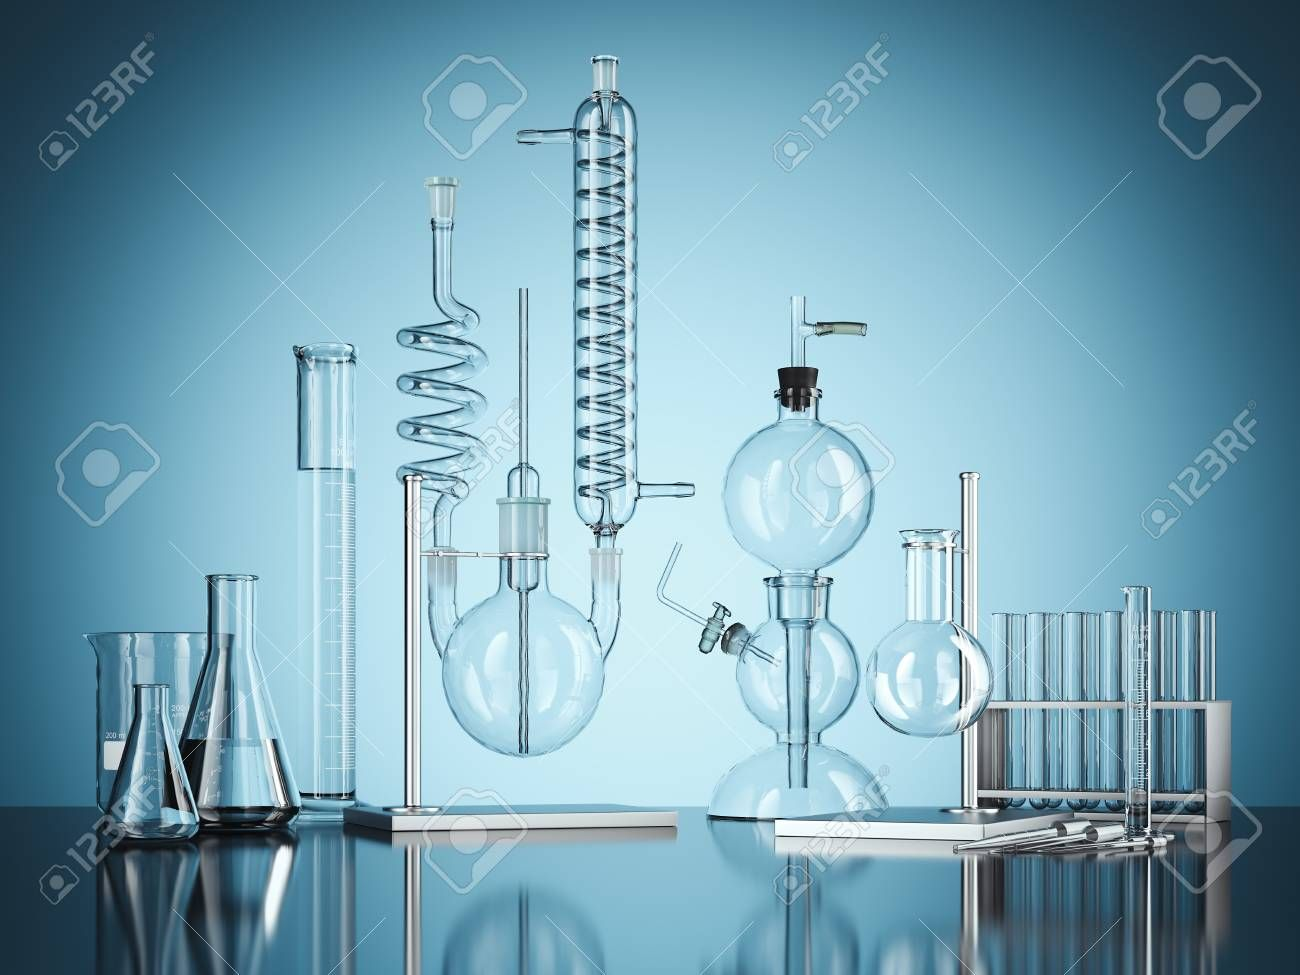 Glass Chemistry Lab Equipment On Blue Background 3d Rendering Stock Photo Affiliate Lab Equipment Glass Chemistry Easy Drawings Chemistry Lab Equipment Blue Backgrounds